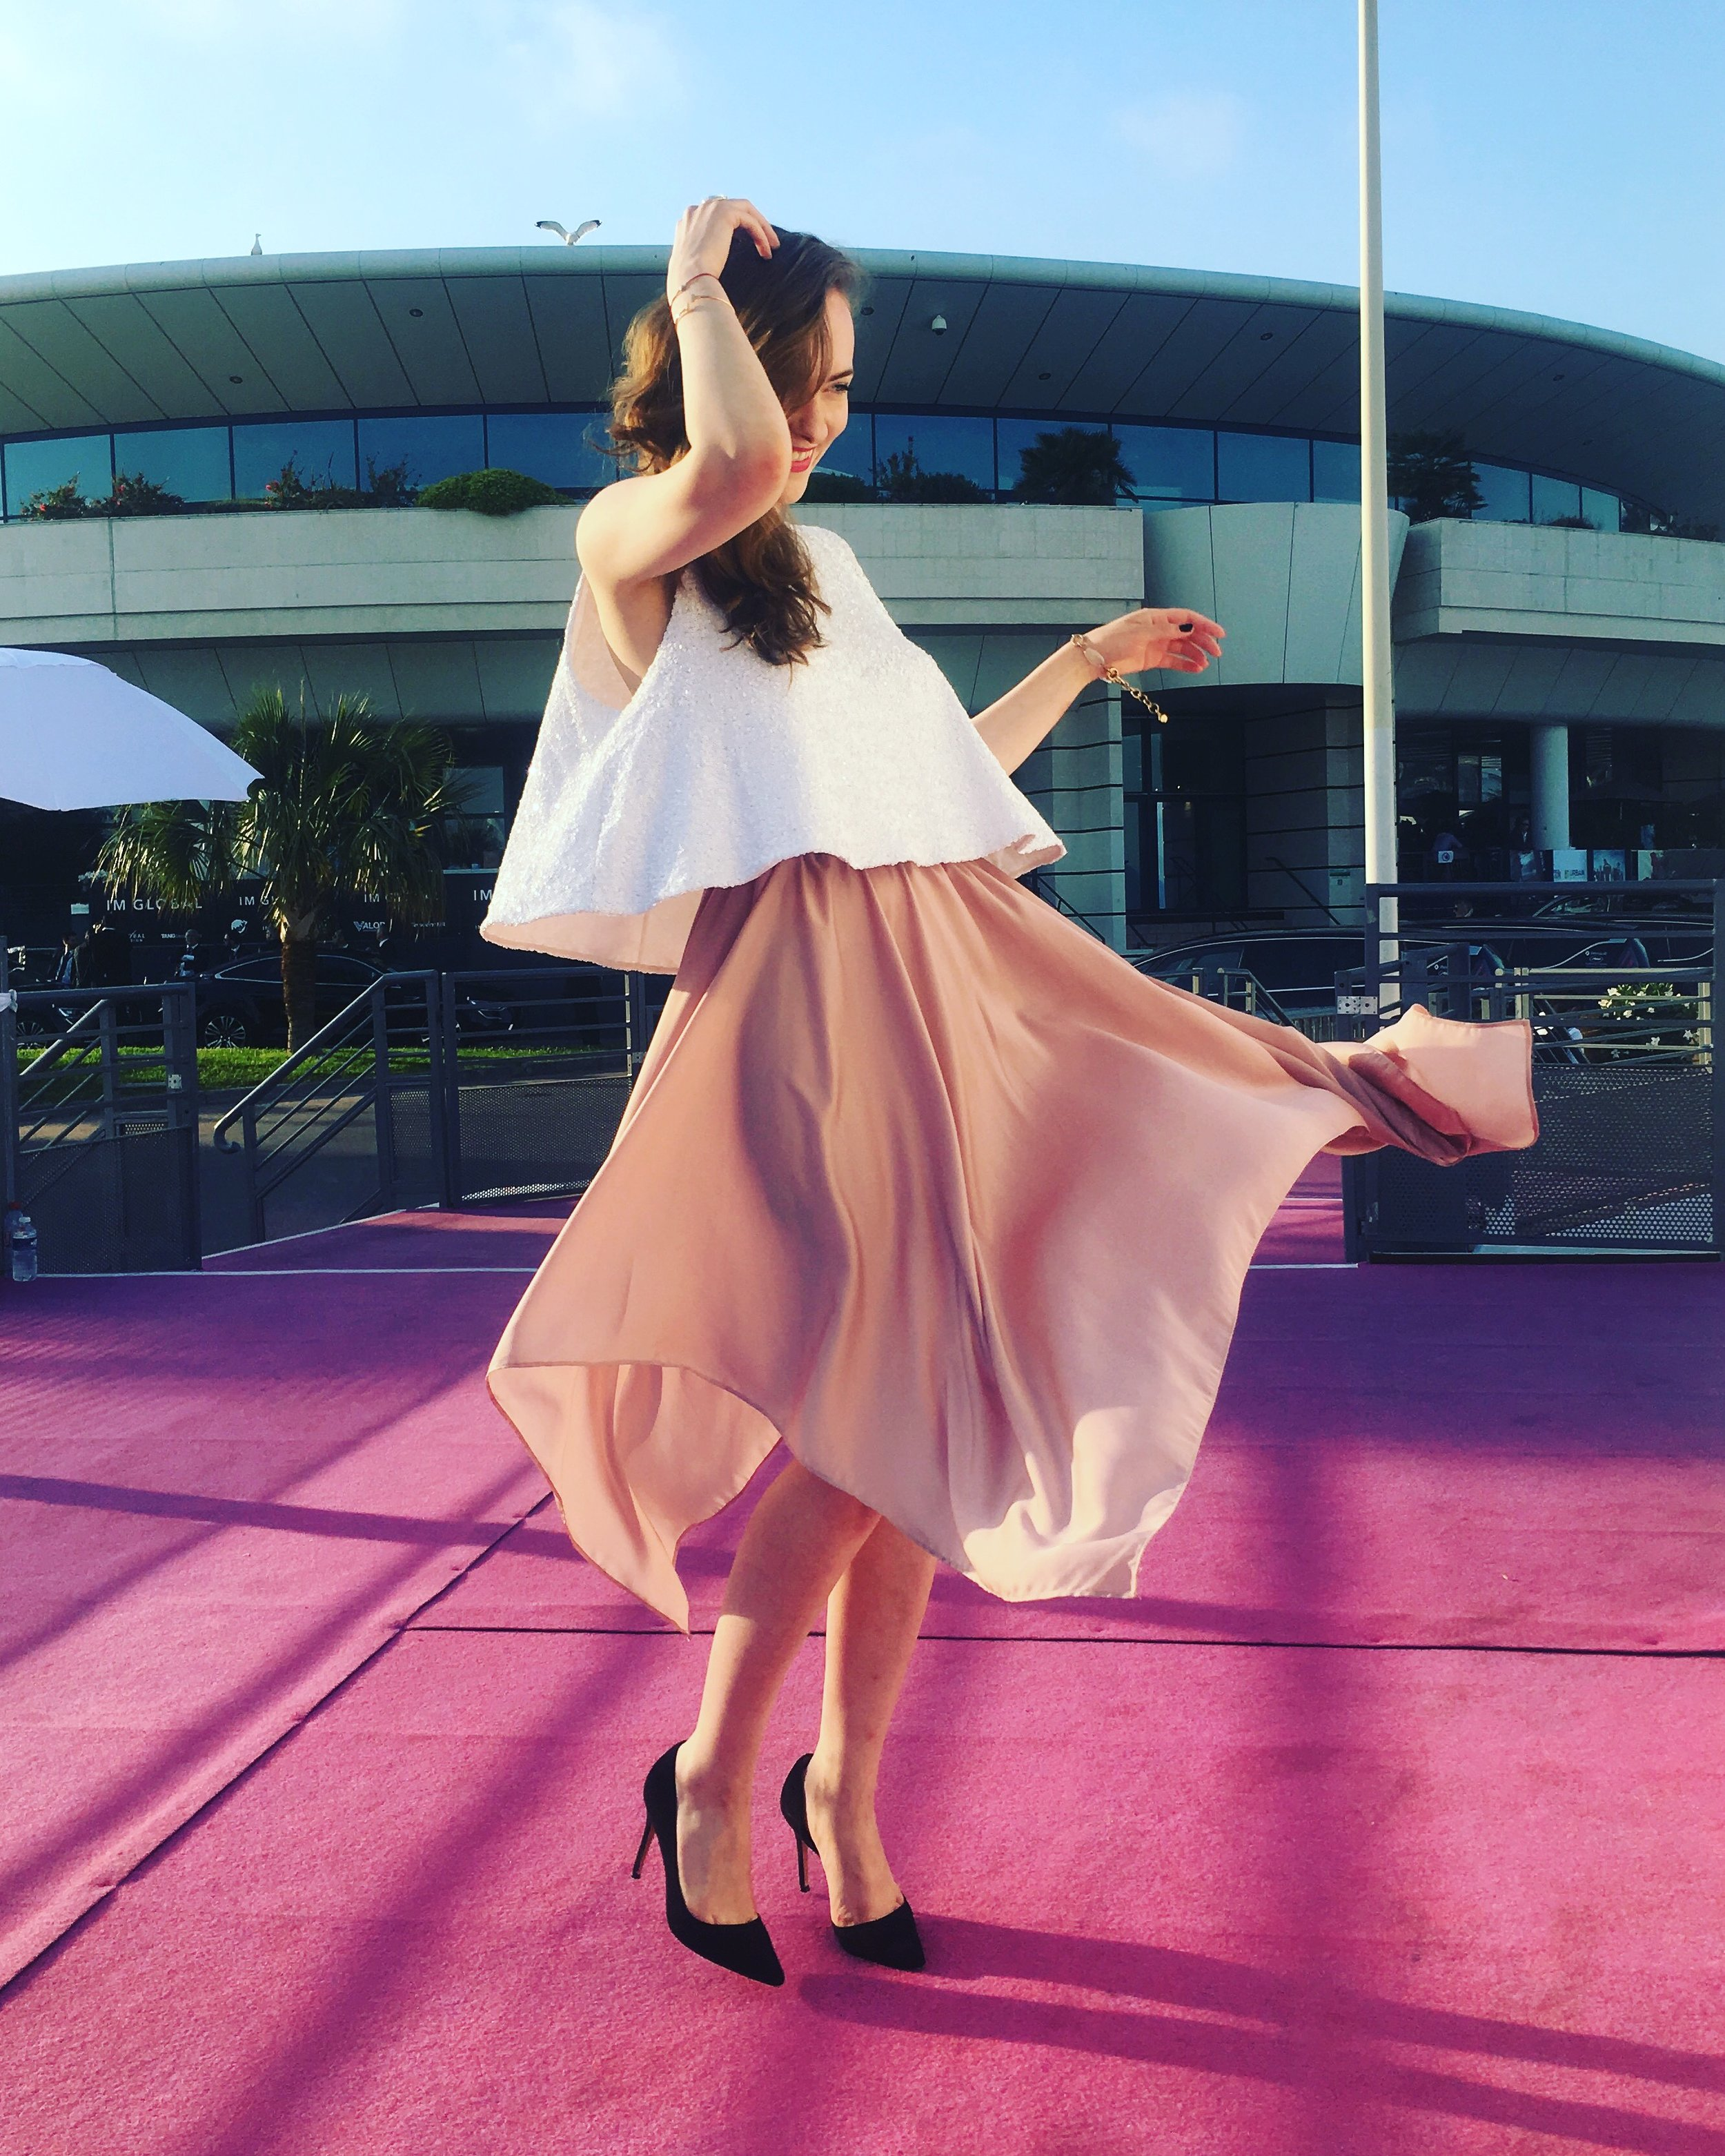 Wearing: ODIVI #ODIVIxCannes